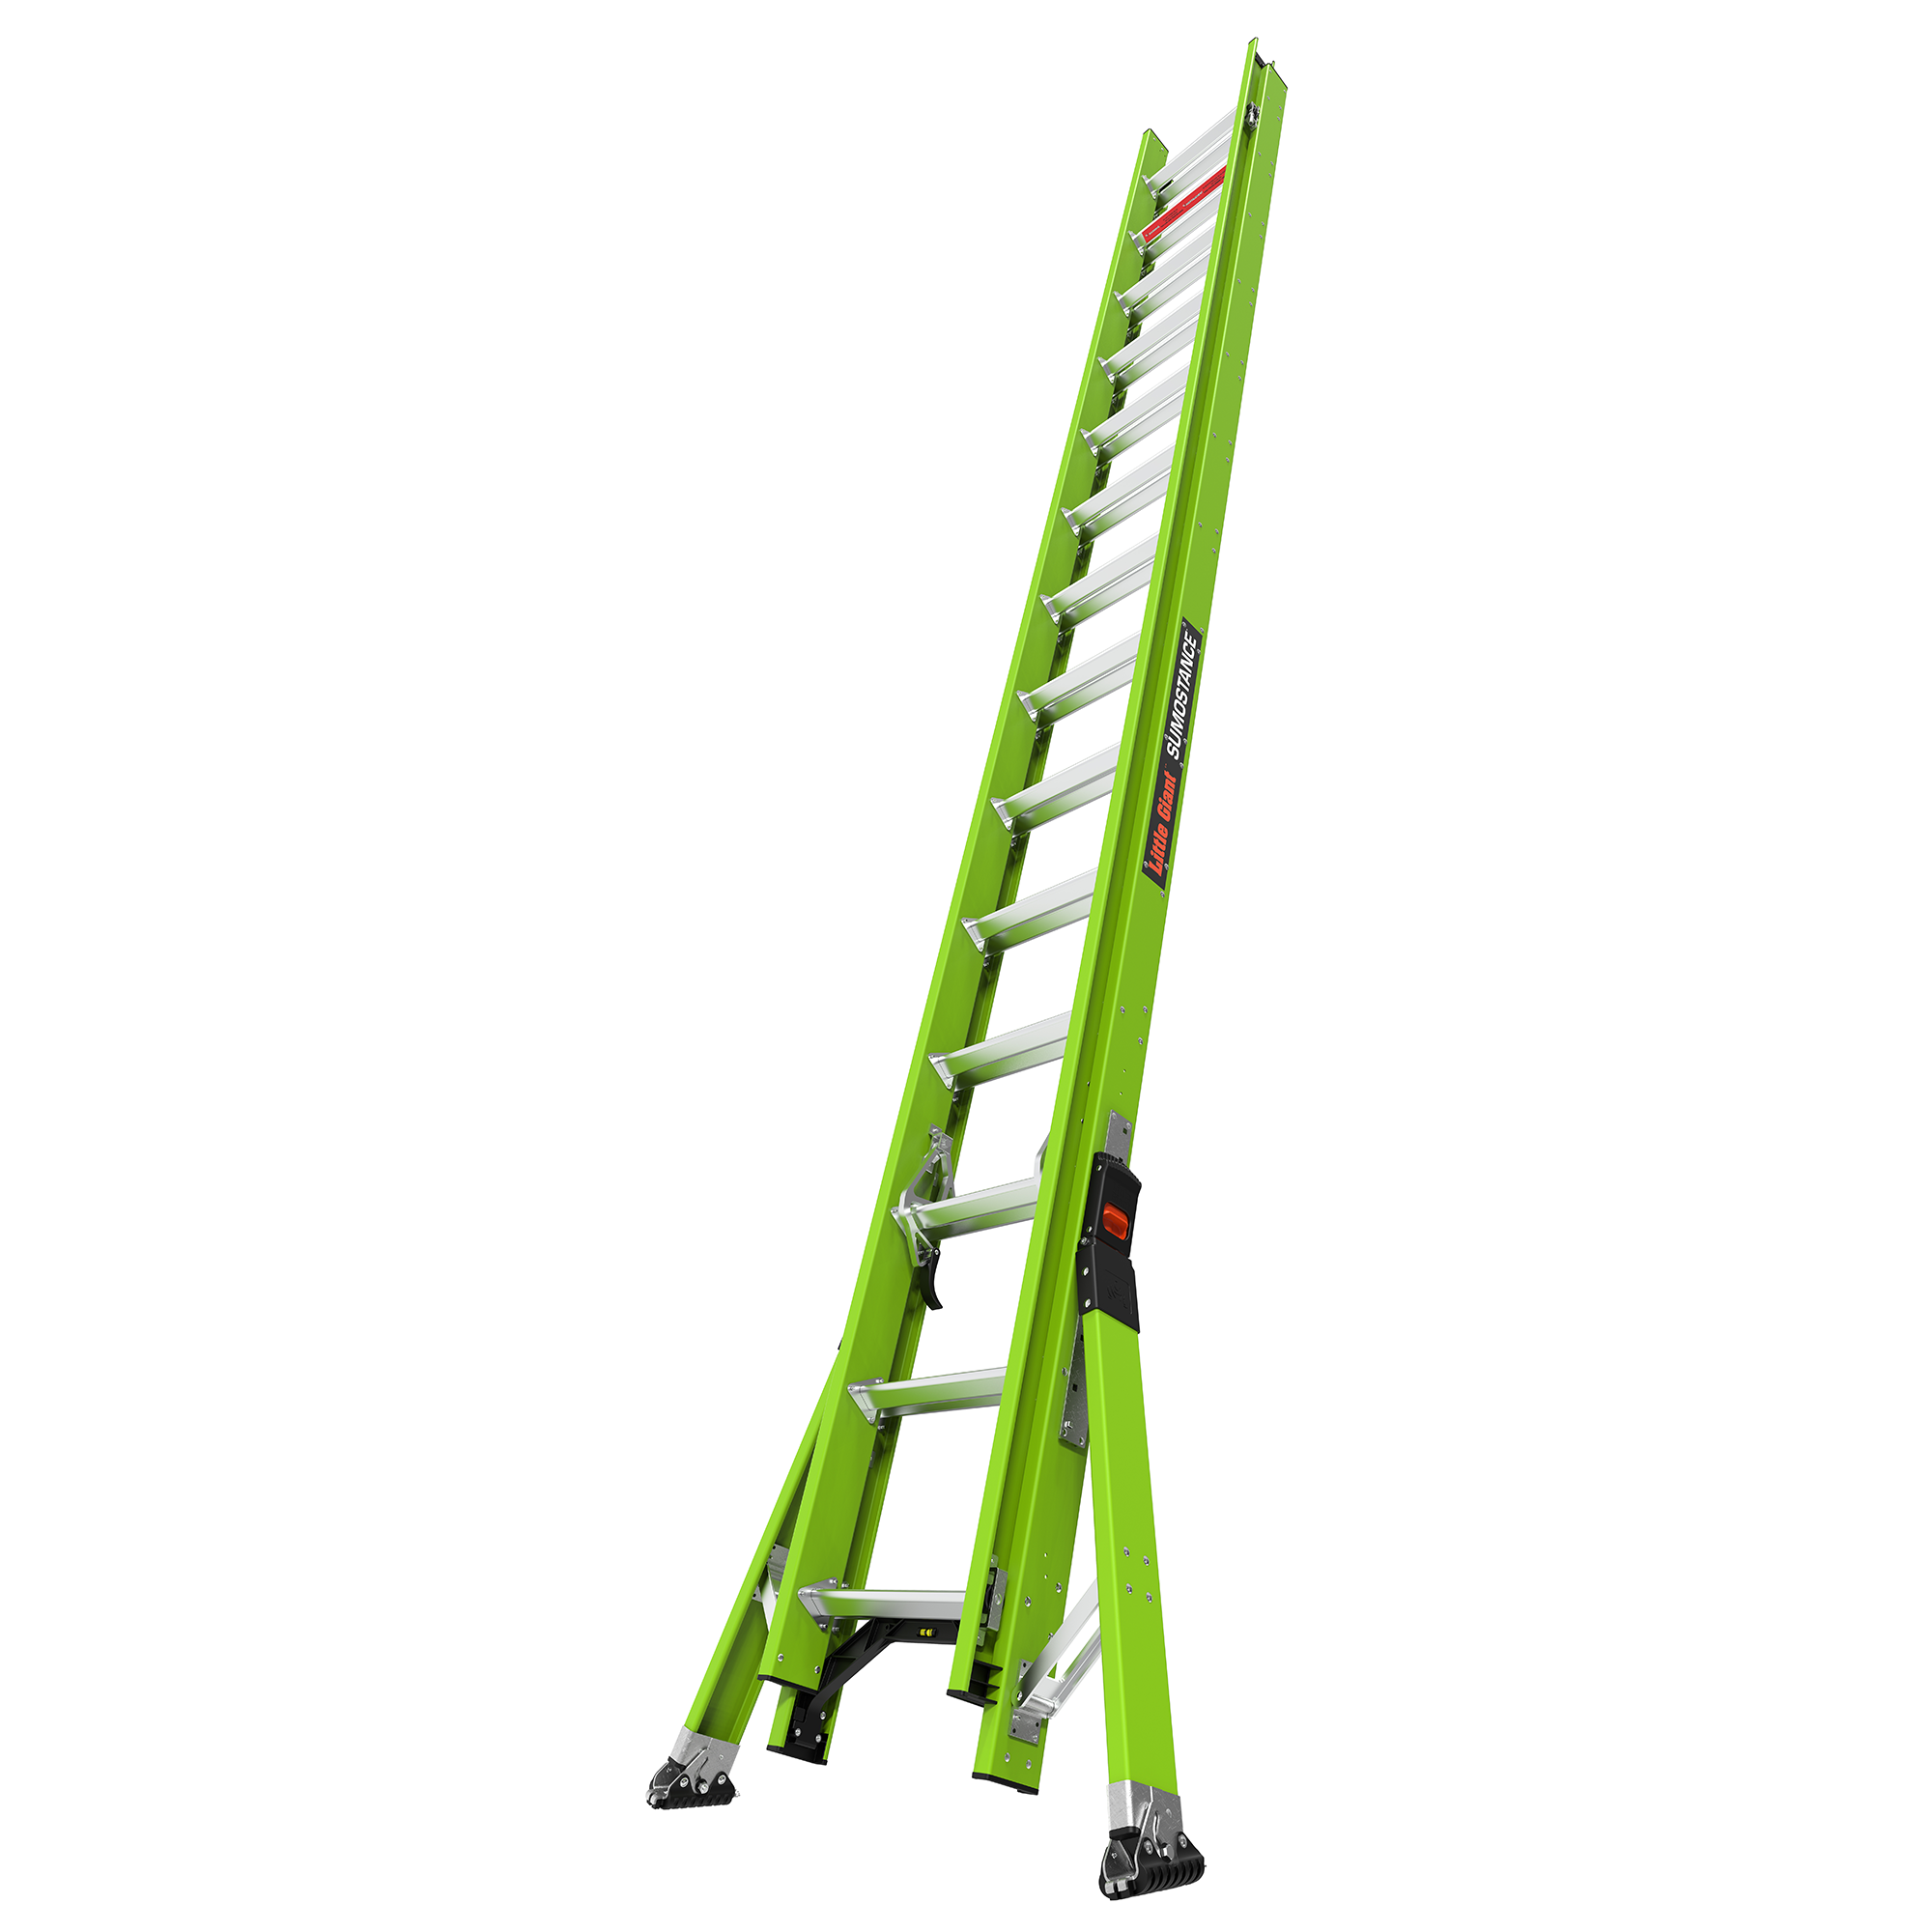 28 Ft. HyperLite SumoStance Fiberglass Extension Ladder - Type IA